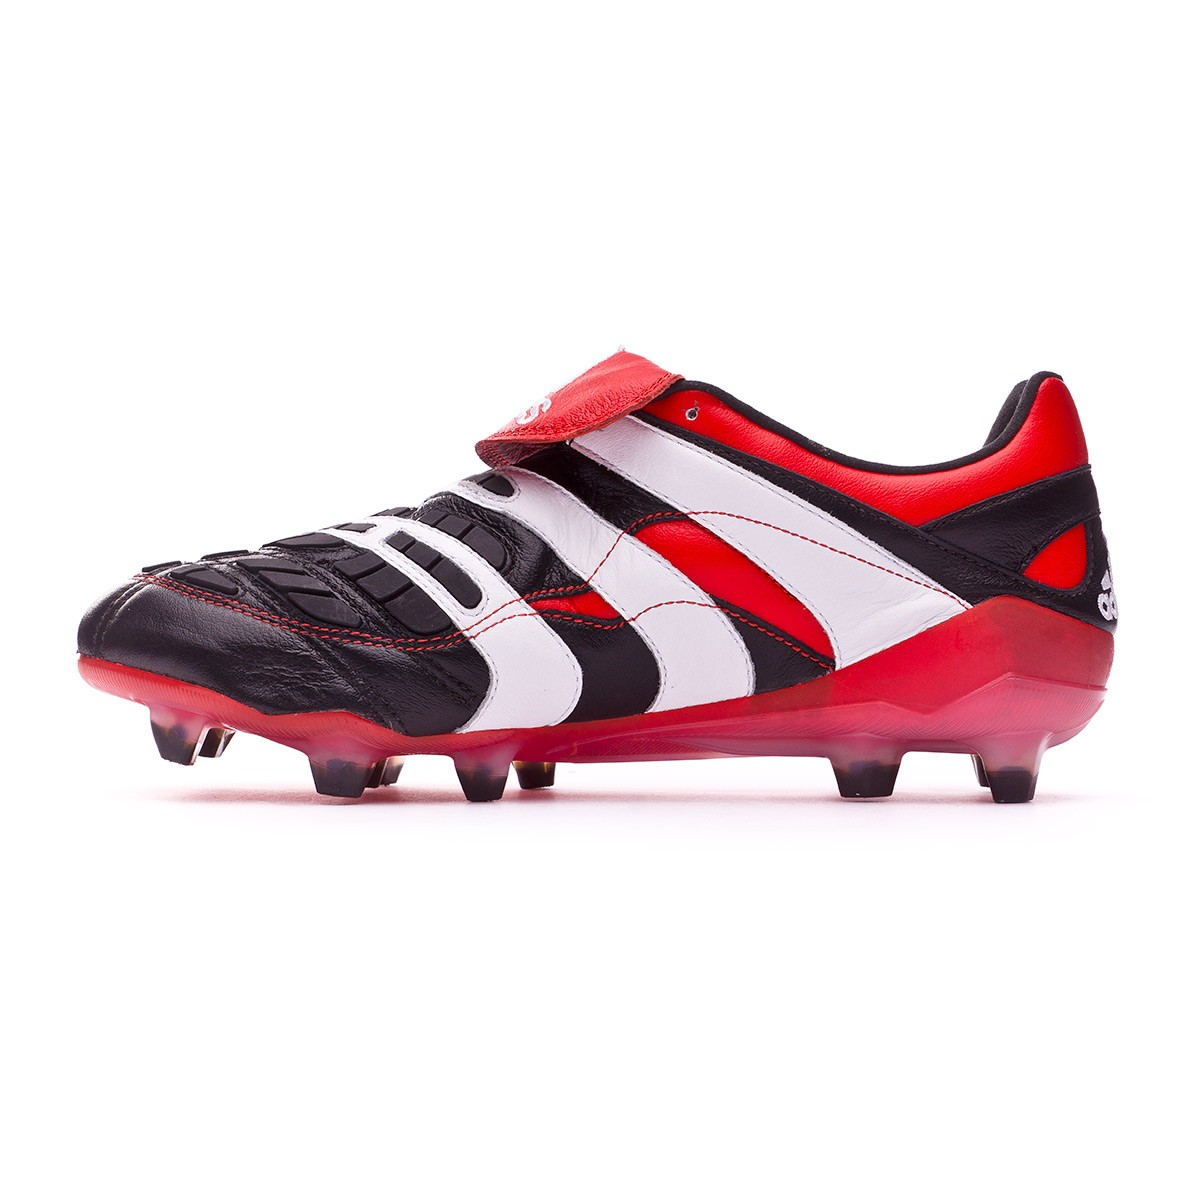 Boot adidas Predator Accelerator FG Black - Football store Fútbol Emotion 2f9554c61a3